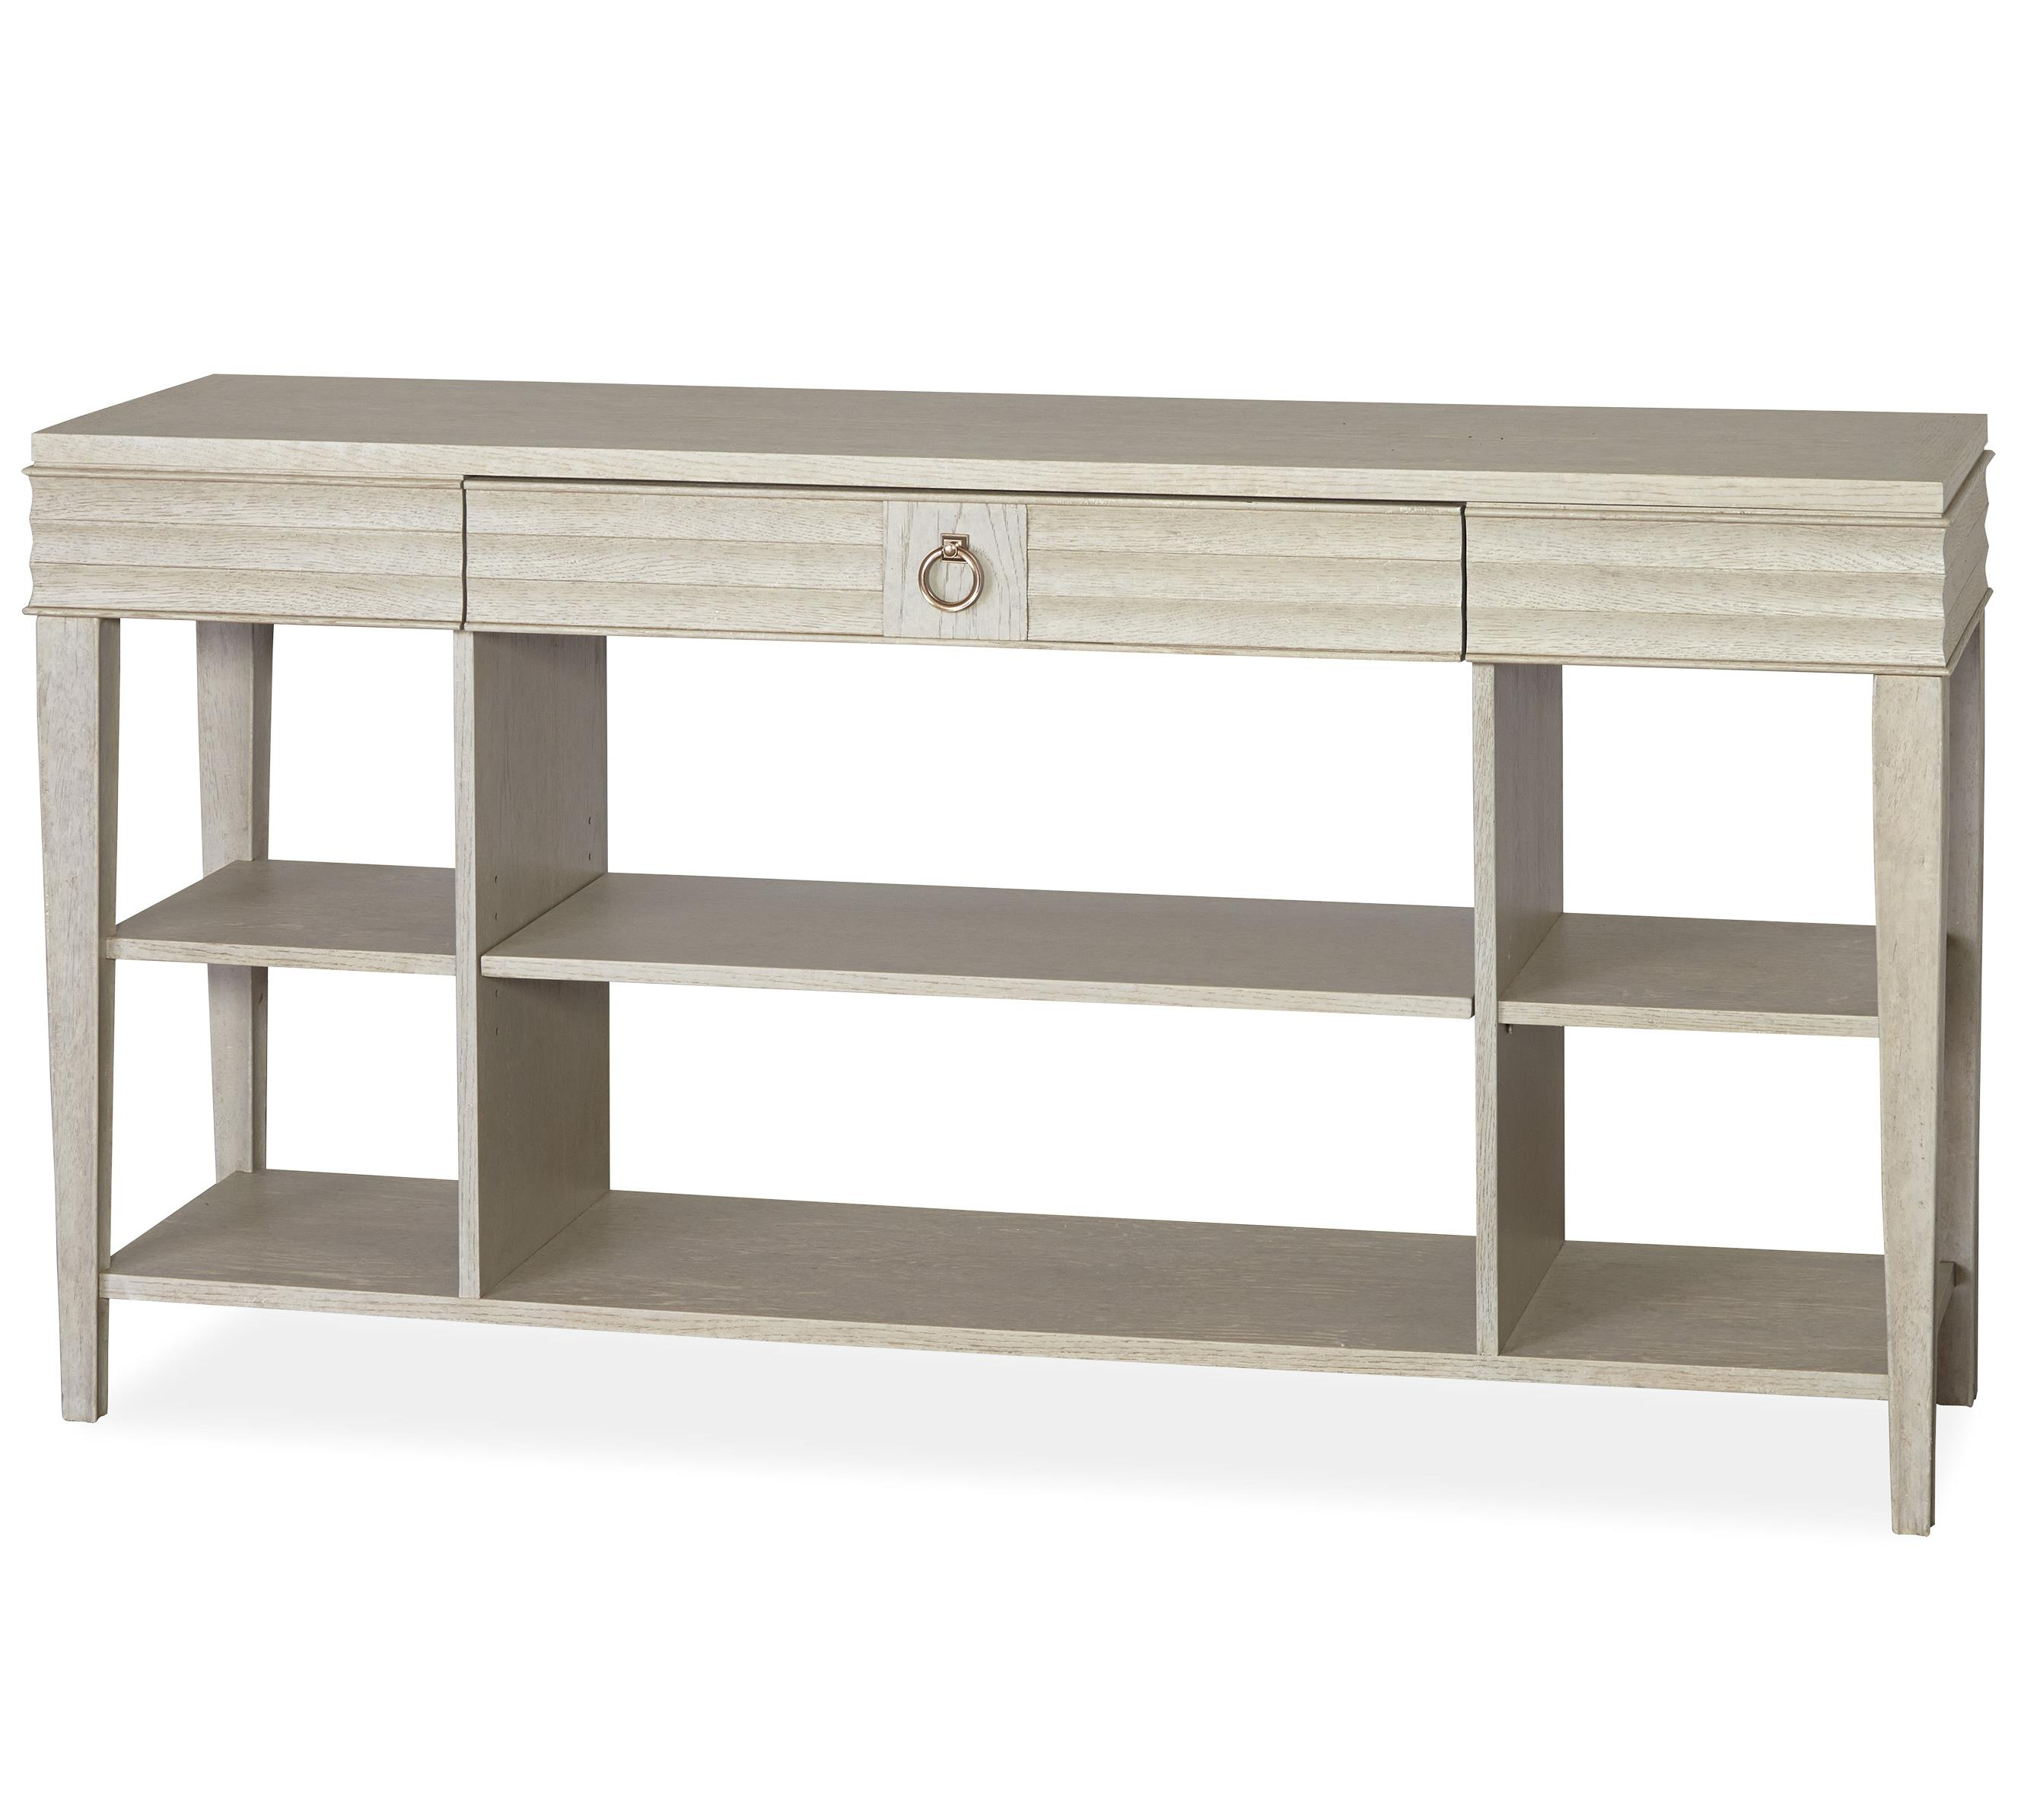 Universal California - Malibu Console Table - Item Number: 476803